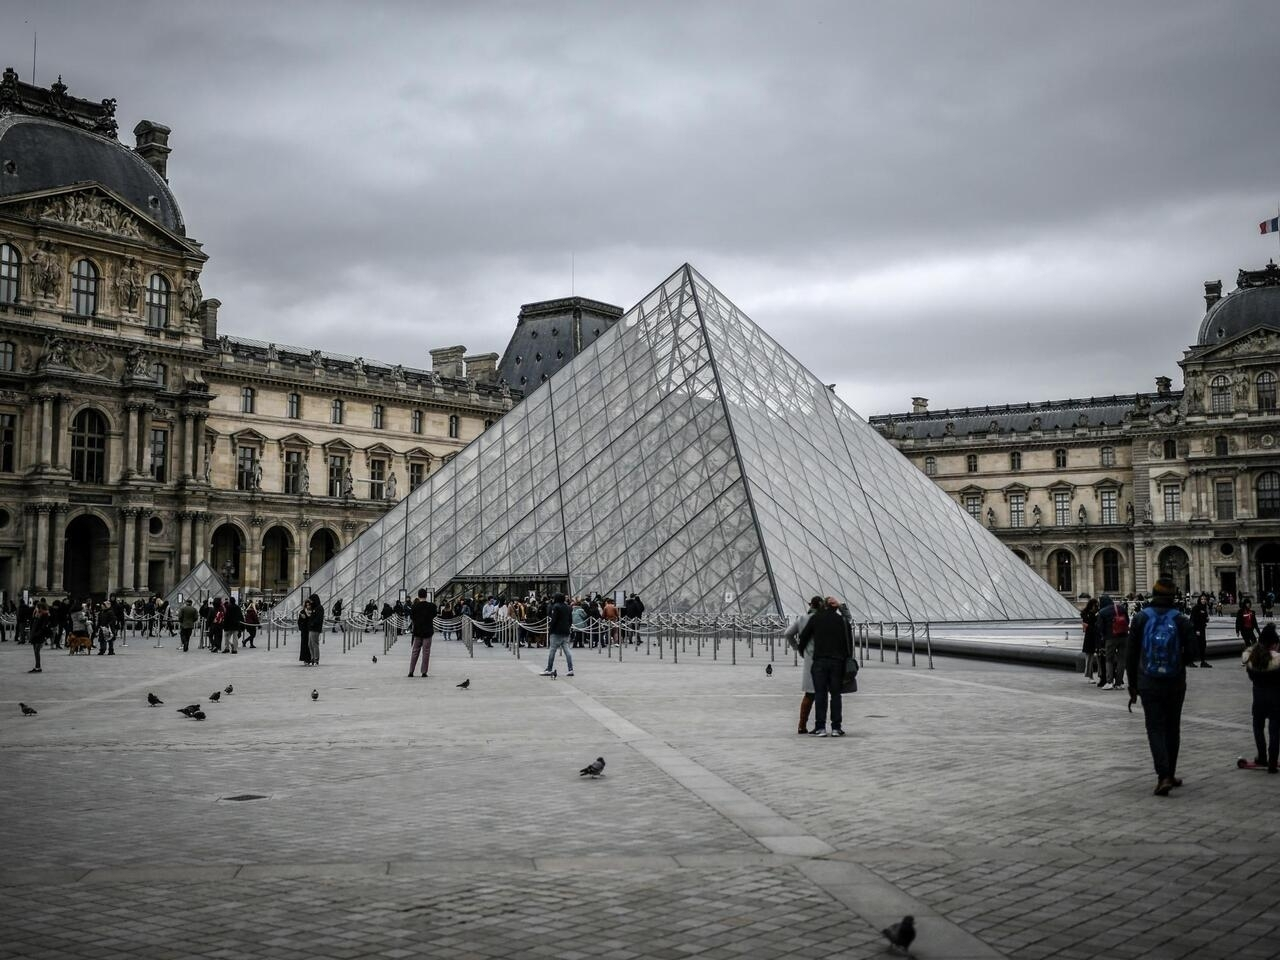 Louvre stays shut as staff and management discuss coronavirus risks